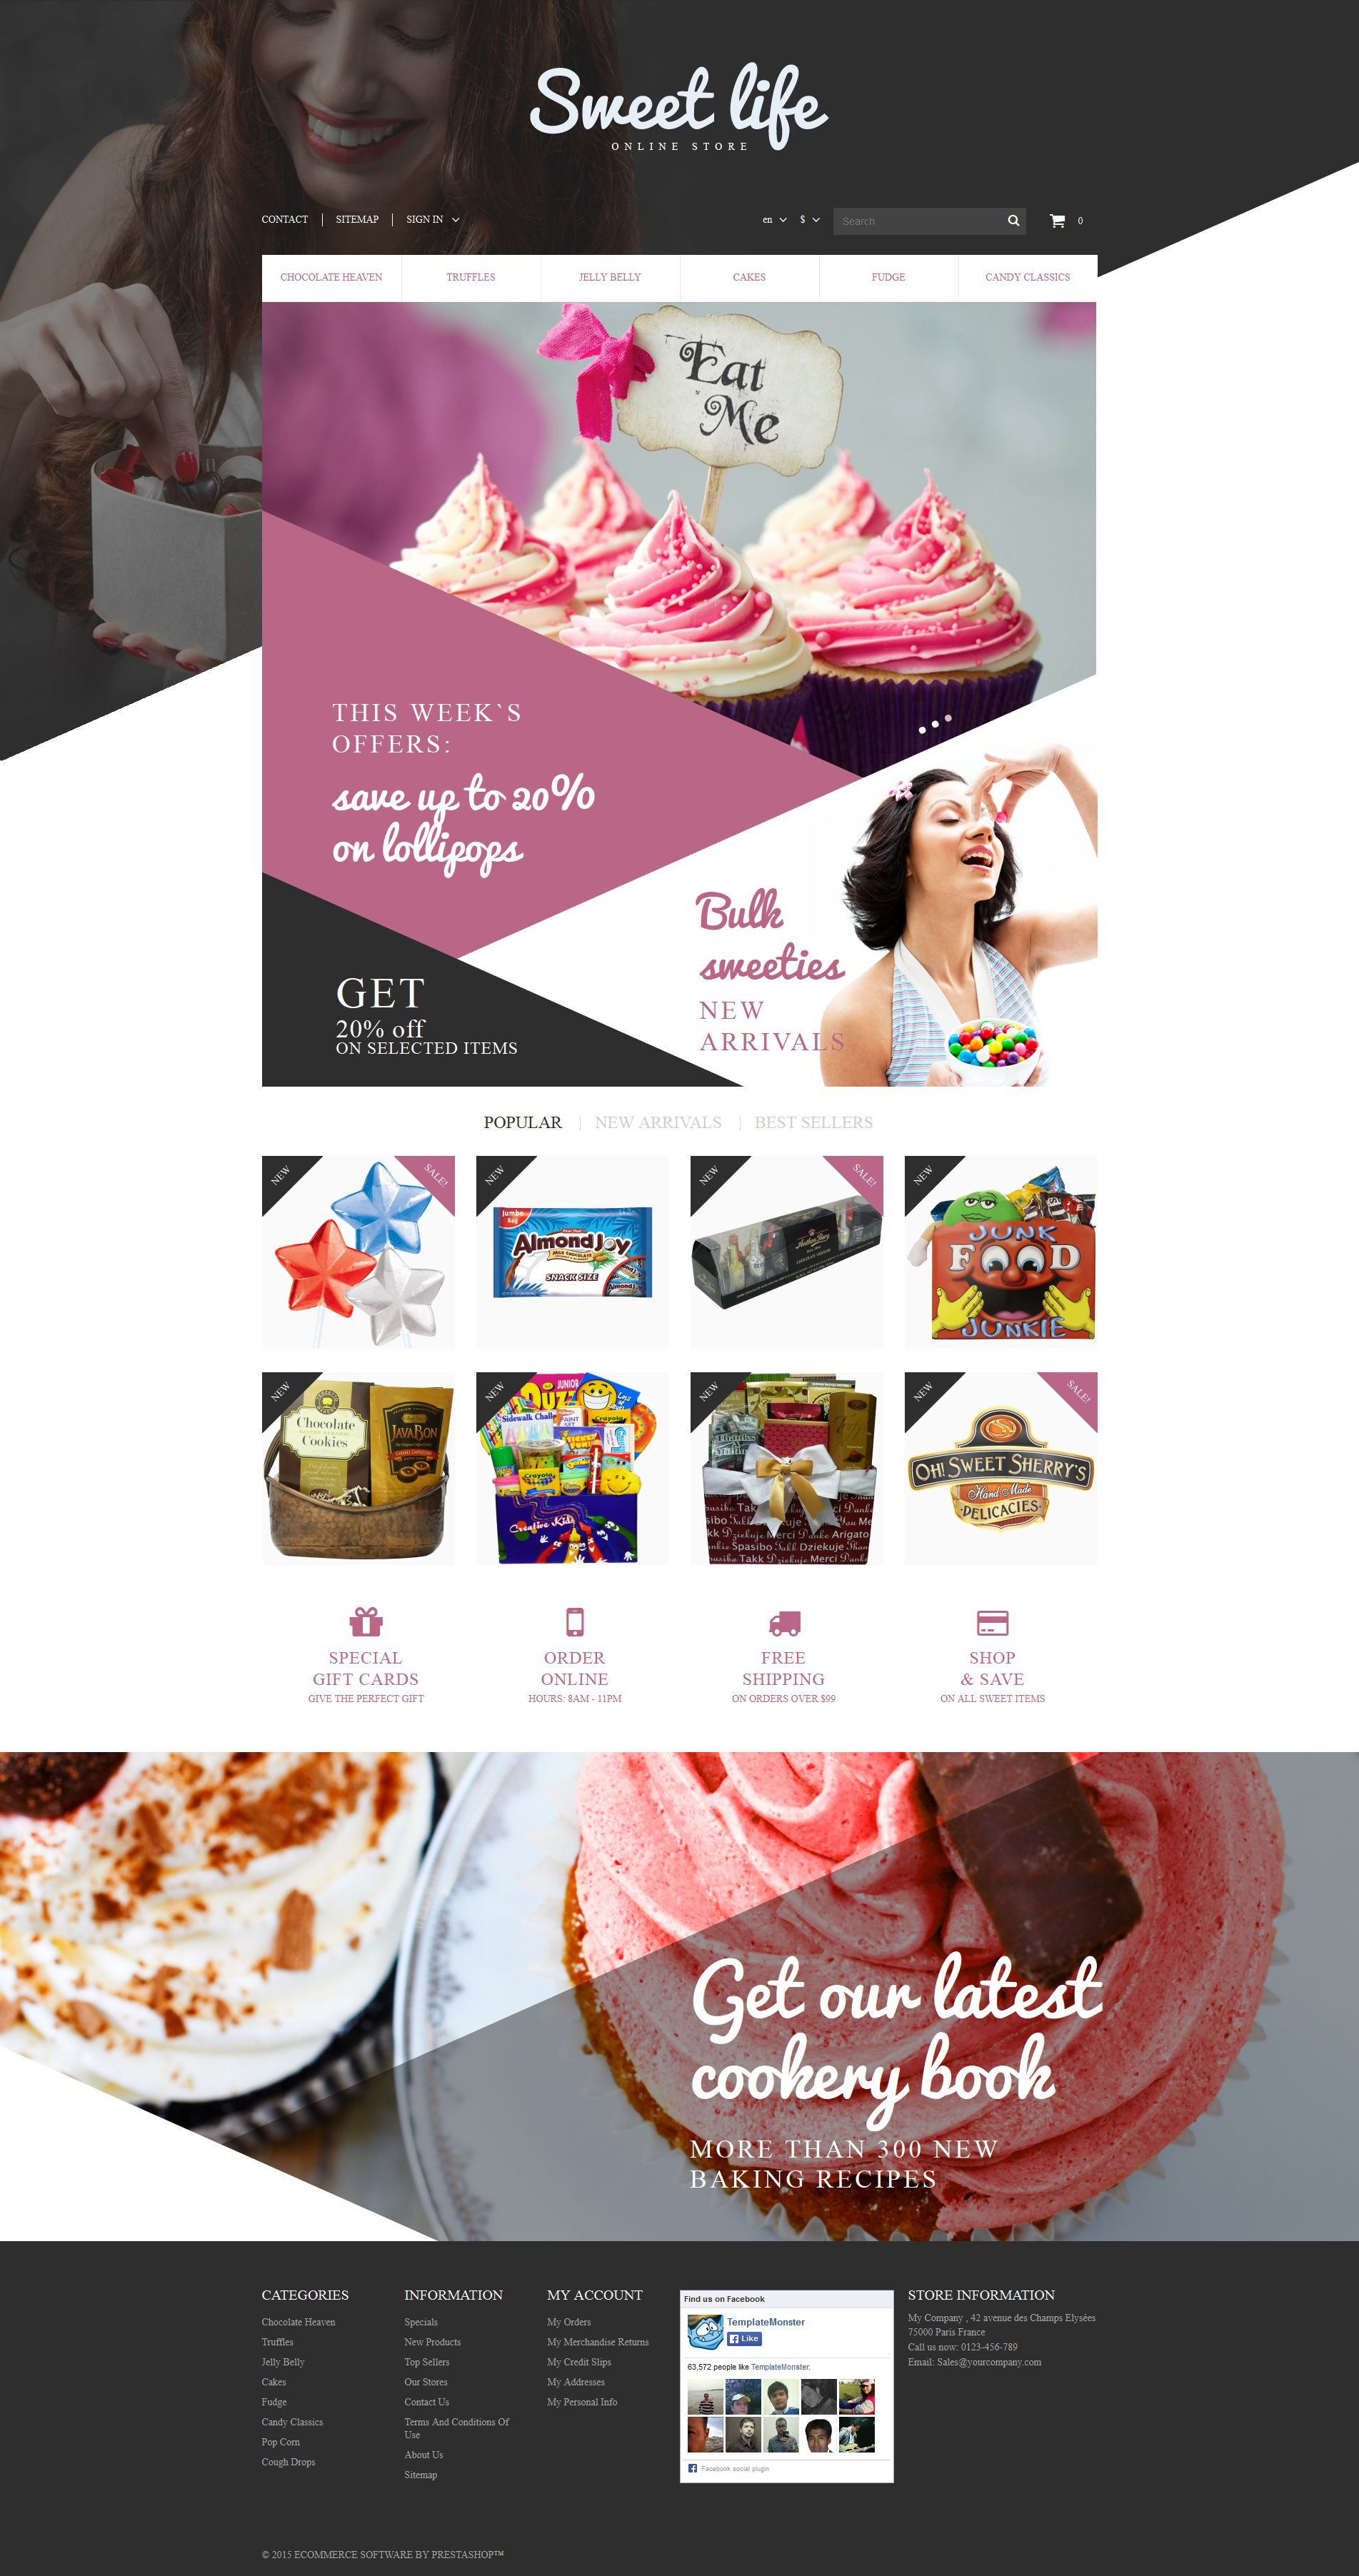 The Sweet Life PrestaShop Design 53308, one of the best PrestaShop themes of its kind (food & drink, most popular), also known as sweet life PrestaShop template, sweets PrestaShop template, house PrestaShop template, candy store PrestaShop template, chocolate PrestaShop template, candy PrestaShop template, nuts PrestaShop template, raisin PrestaShop template, products PrestaShop template, services PrestaShop template, order PrestaShop template, boxed PrestaShop template, chocolate PrestaShop template, assortment PrestaShop template, butter PrestaShop template, cream PrestaShop template, fruits PrestaShop template, gourmet PrestaShop template, pretzel PrestaShop template, truffles PrestaShop template, sugar PrestaShop template, free gummy PrestaShop template, chocolate PrestaShop template, bar PrestaShop template, dark milk PrestaShop template, white hot chocolate PrestaShop template, peanut PrestaShop template, creme PrestaShop template, brulee PrestaShop template, ginger PrestaShop template, pistachio and related with sweet life, sweets, house, candy store, chocolate, candy, nuts, raisin, products, services, order, boxed, chocolate, assortment, butter, cream, fruits, gourmet, pretzel, truffles, sugar, free gummy, chocolate, bar, dark milk, white hot chocolate, peanut, creme, brulee, ginger, pistachio, etc.